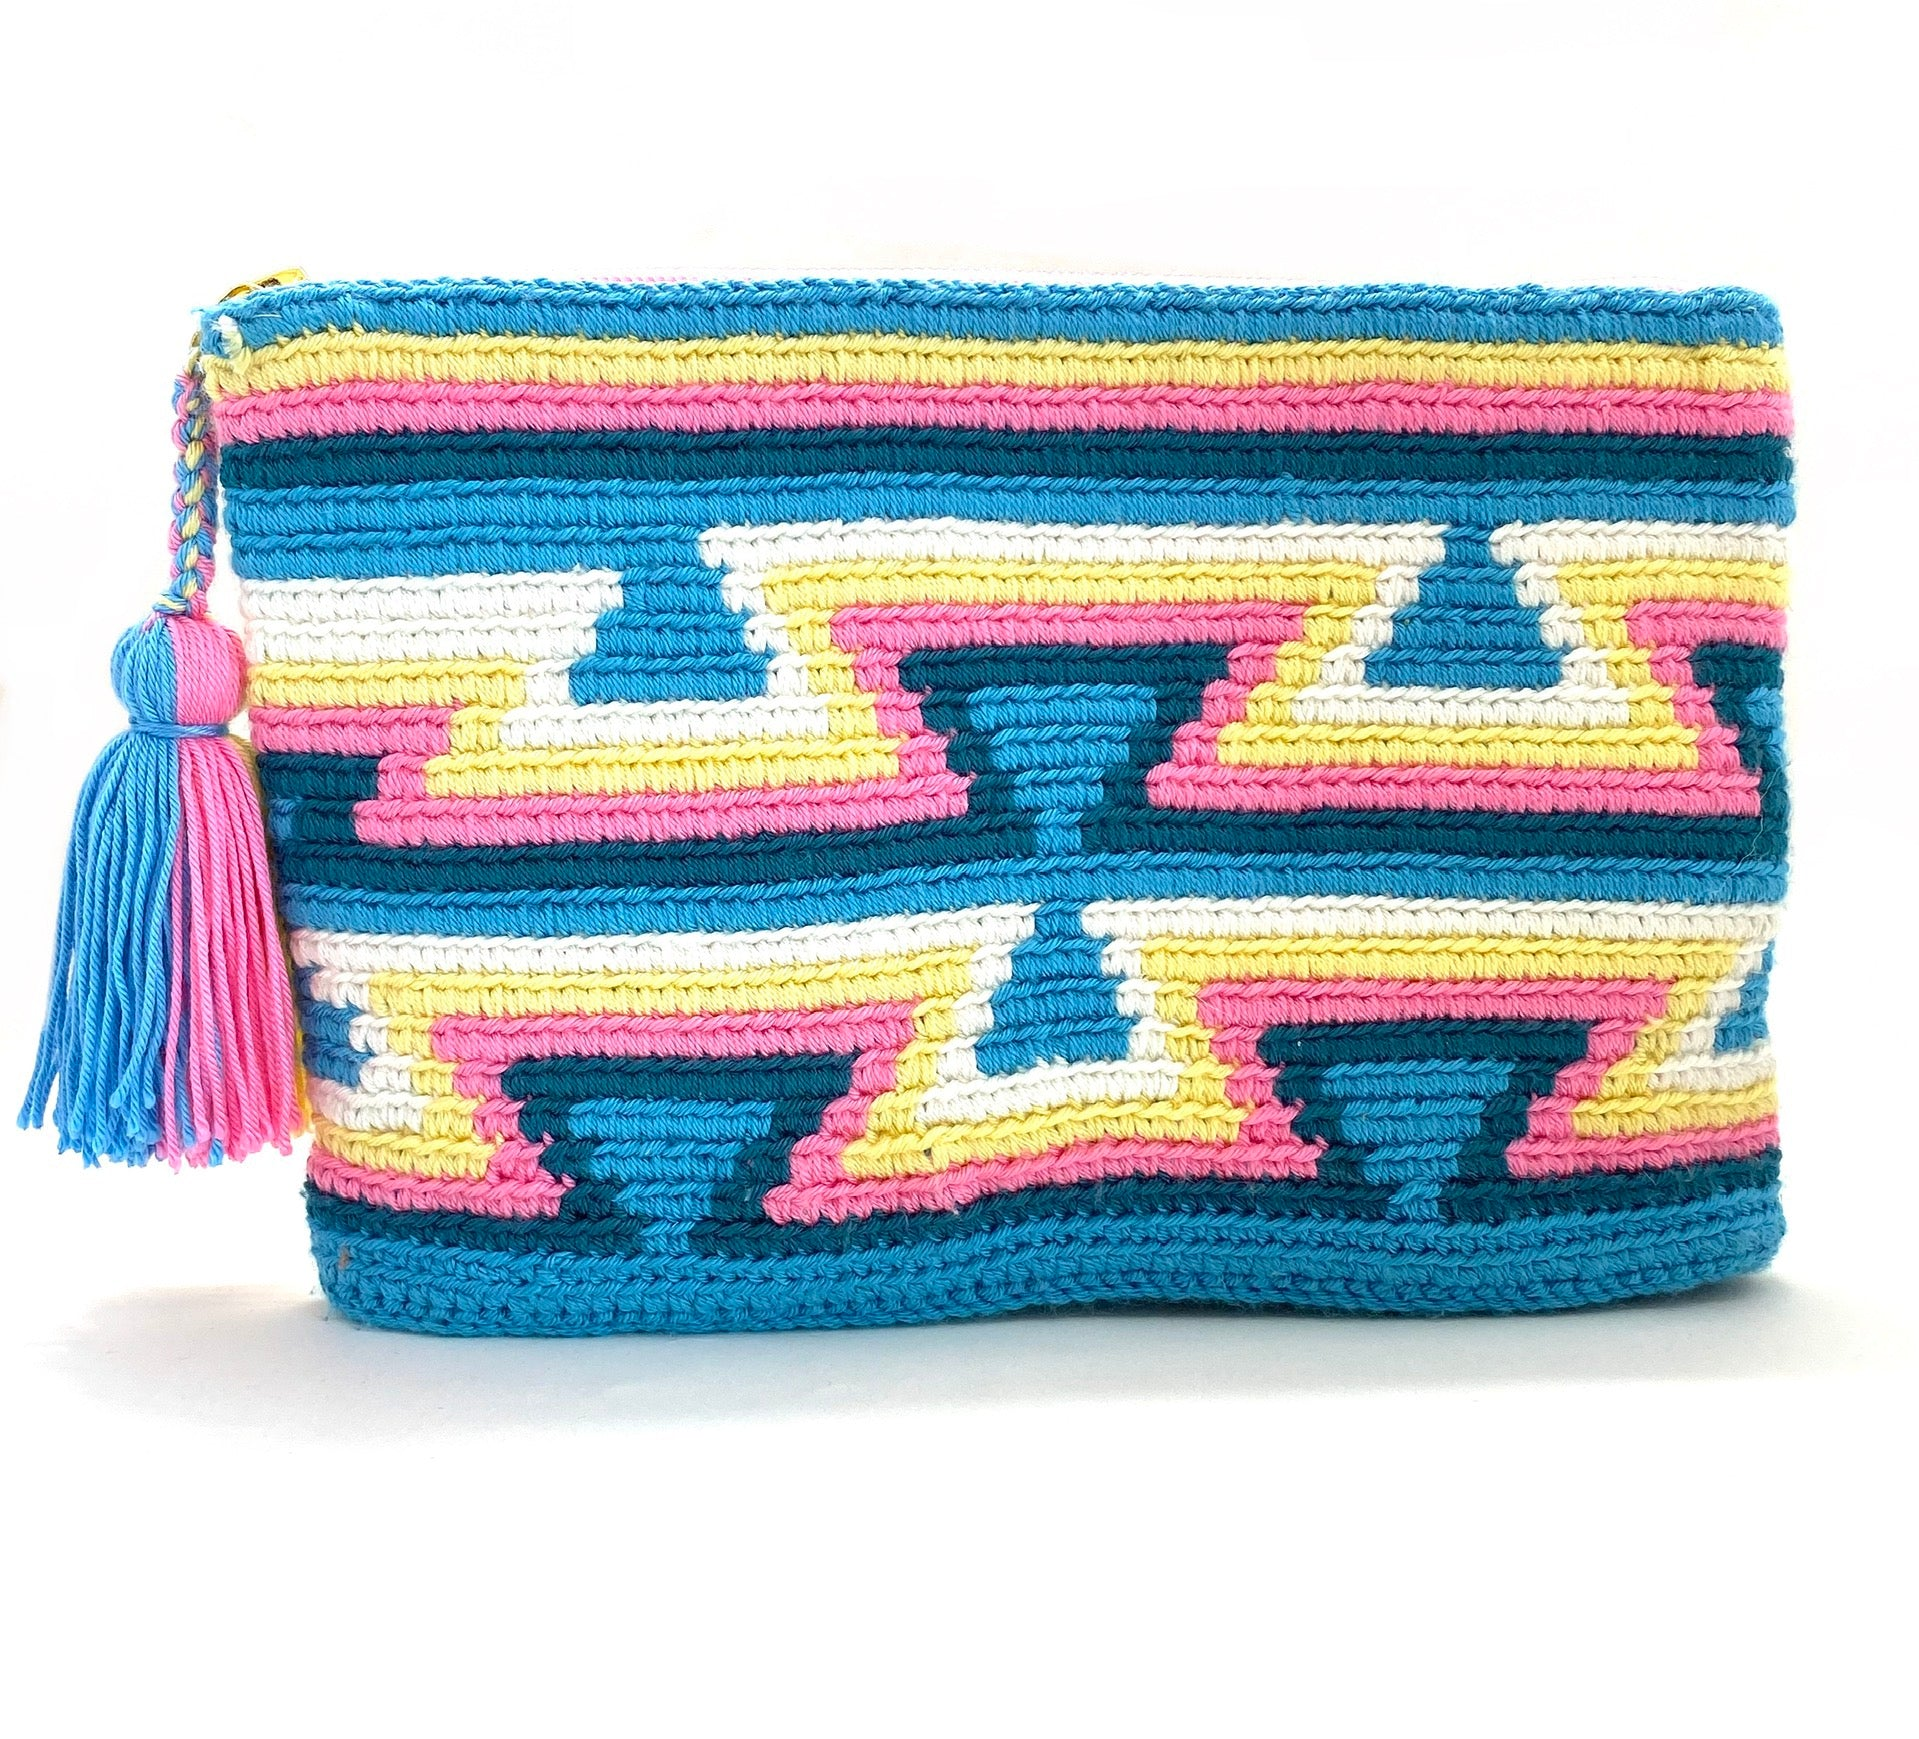 Clutch sky blue body, blue inverted triangles, navy blue, pink, yellow, white, and tassel.